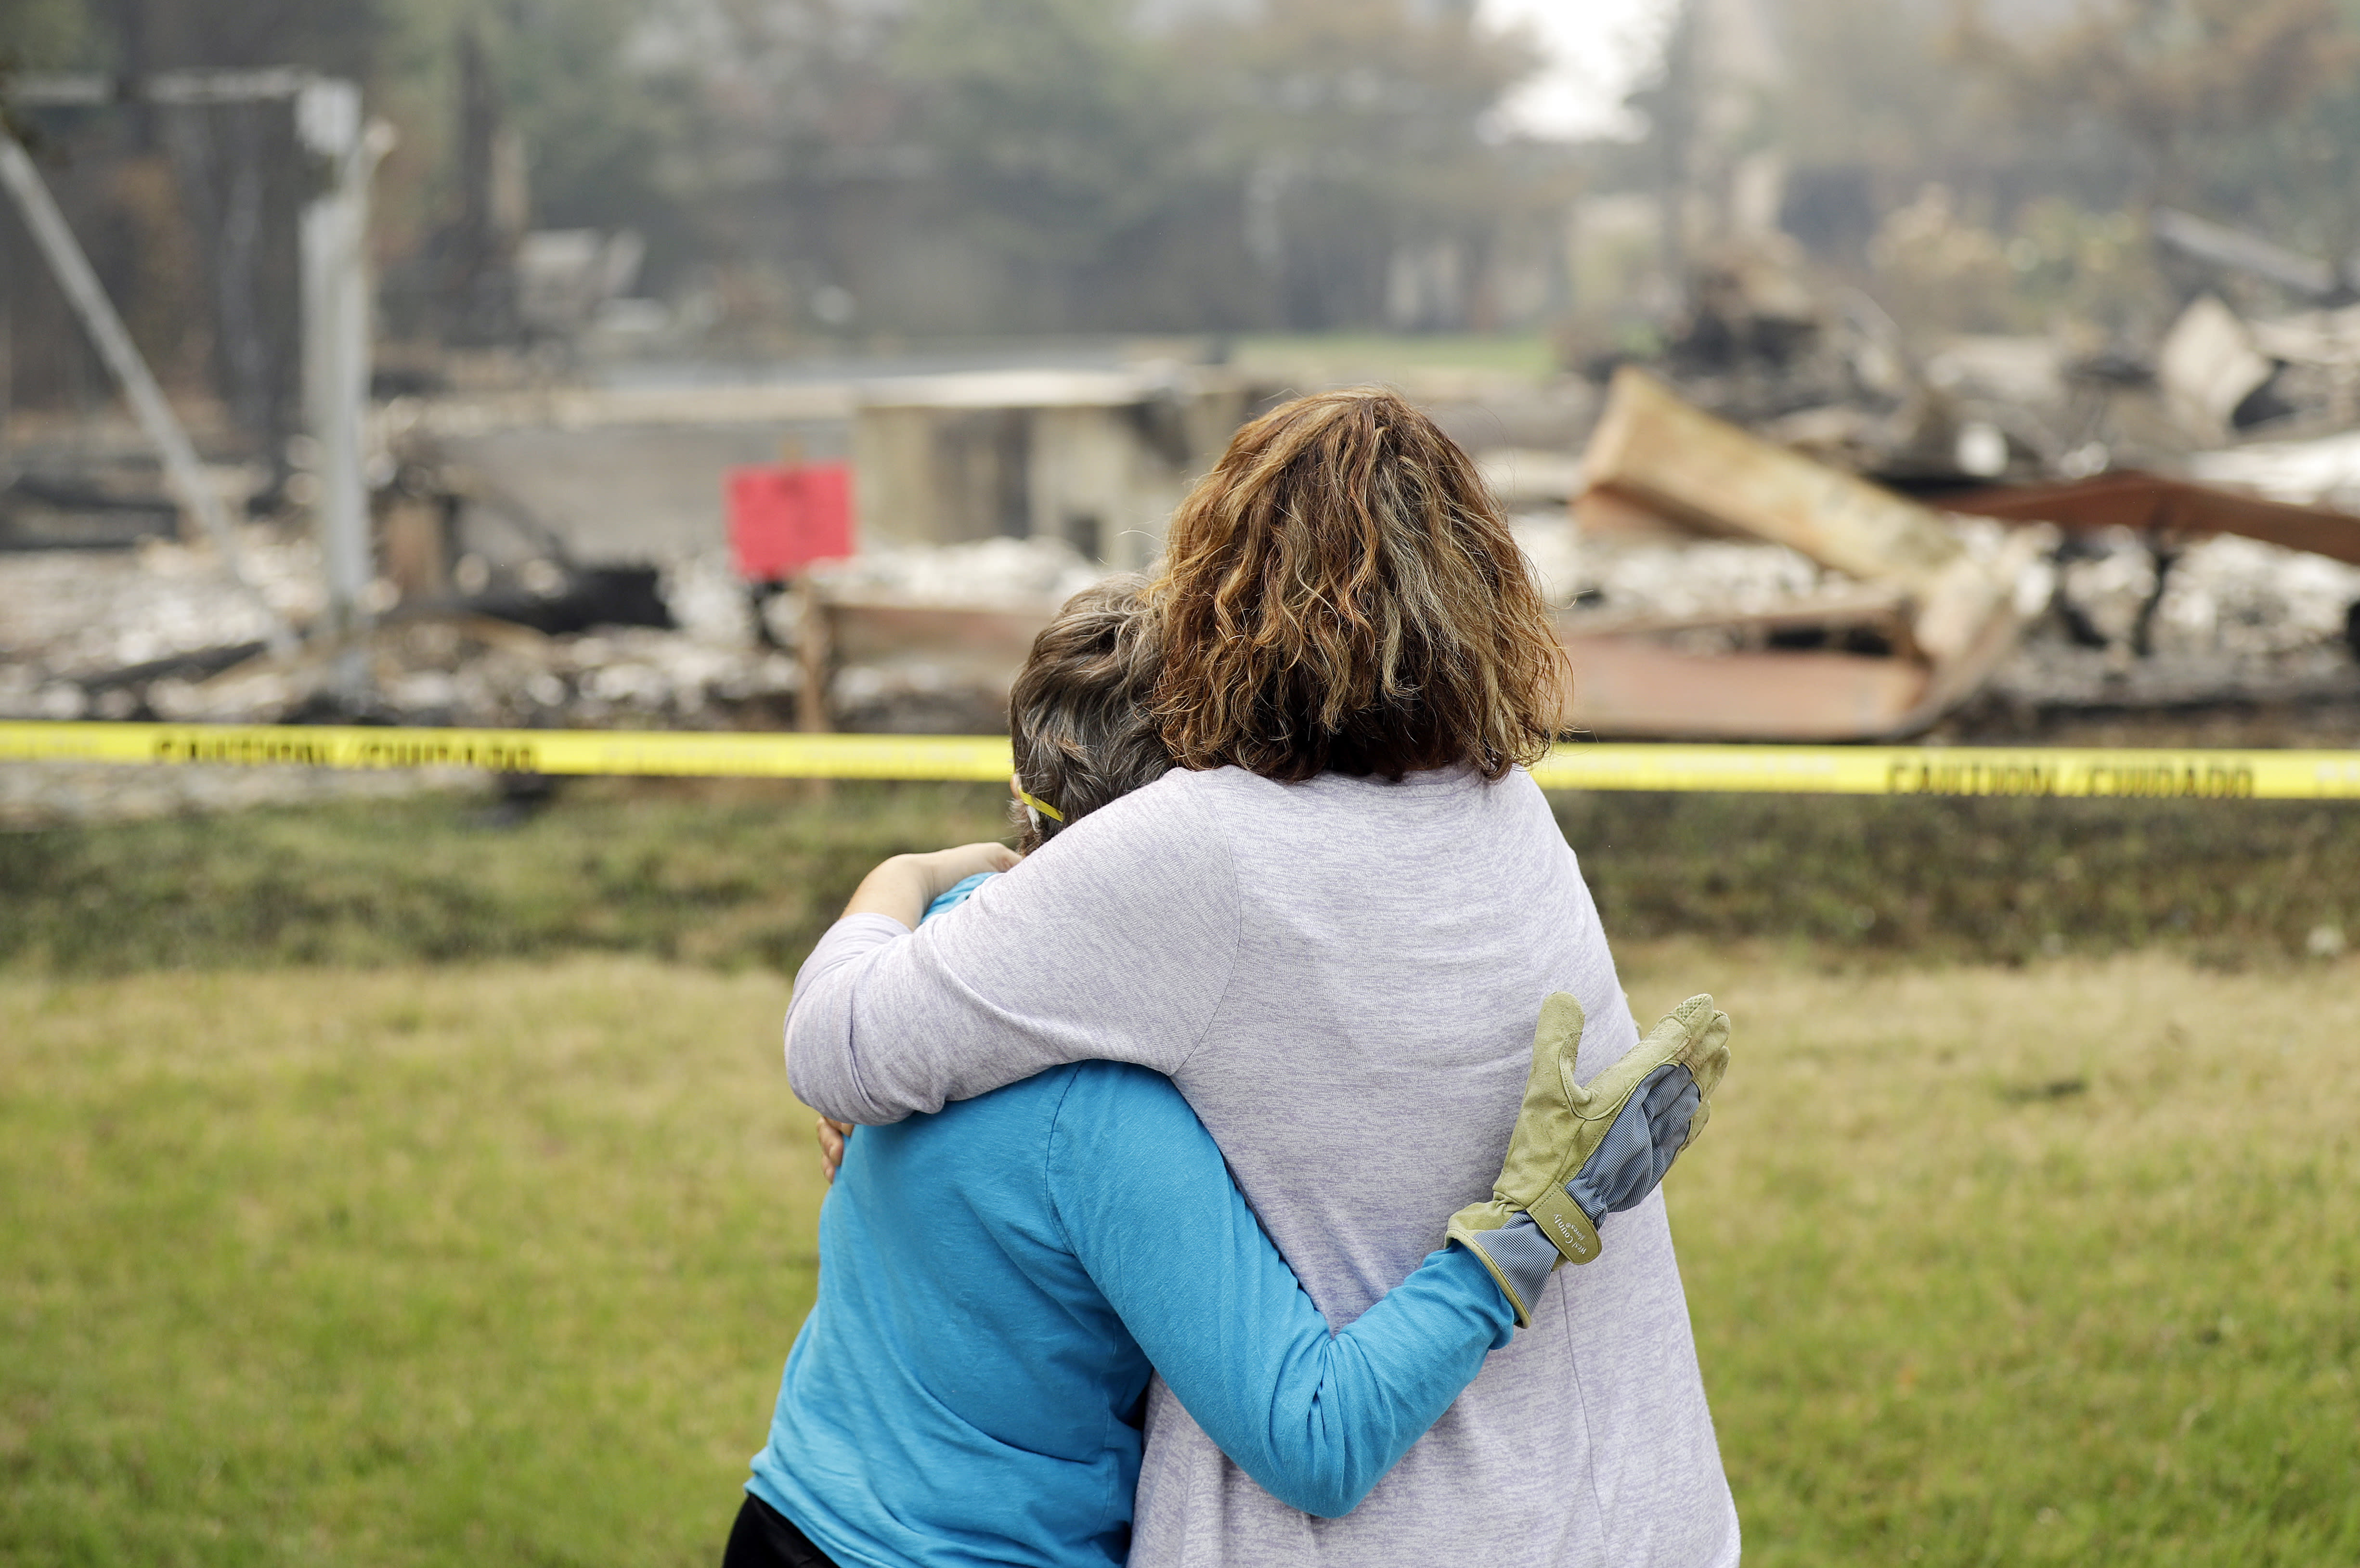 Back to rubble, some 'lost everything' in California fire